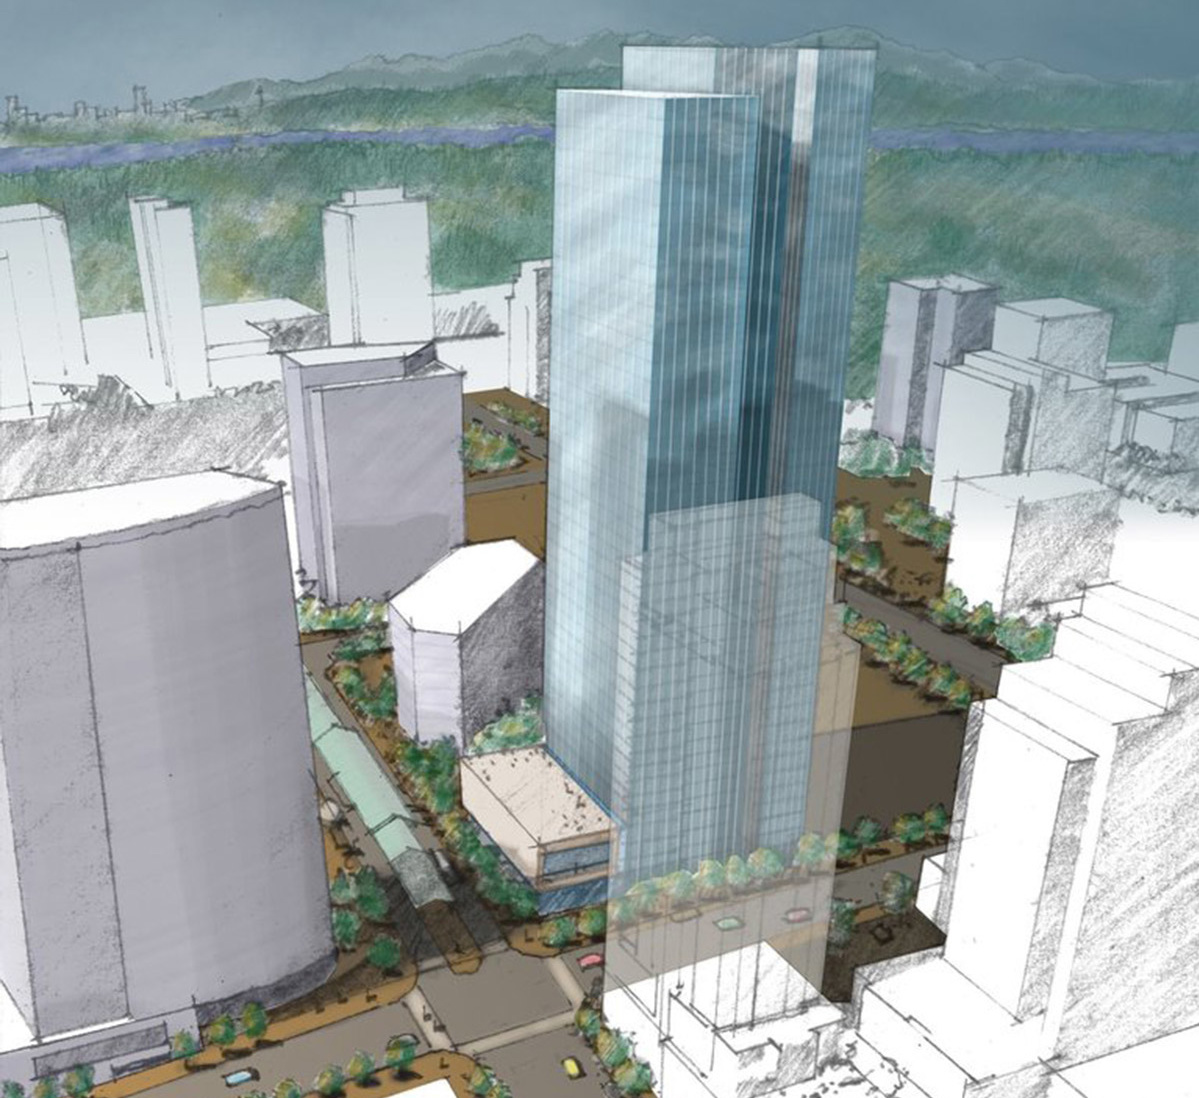 Rendering of a tall tower in opaque blue outline, the possible future site of Amazon offices